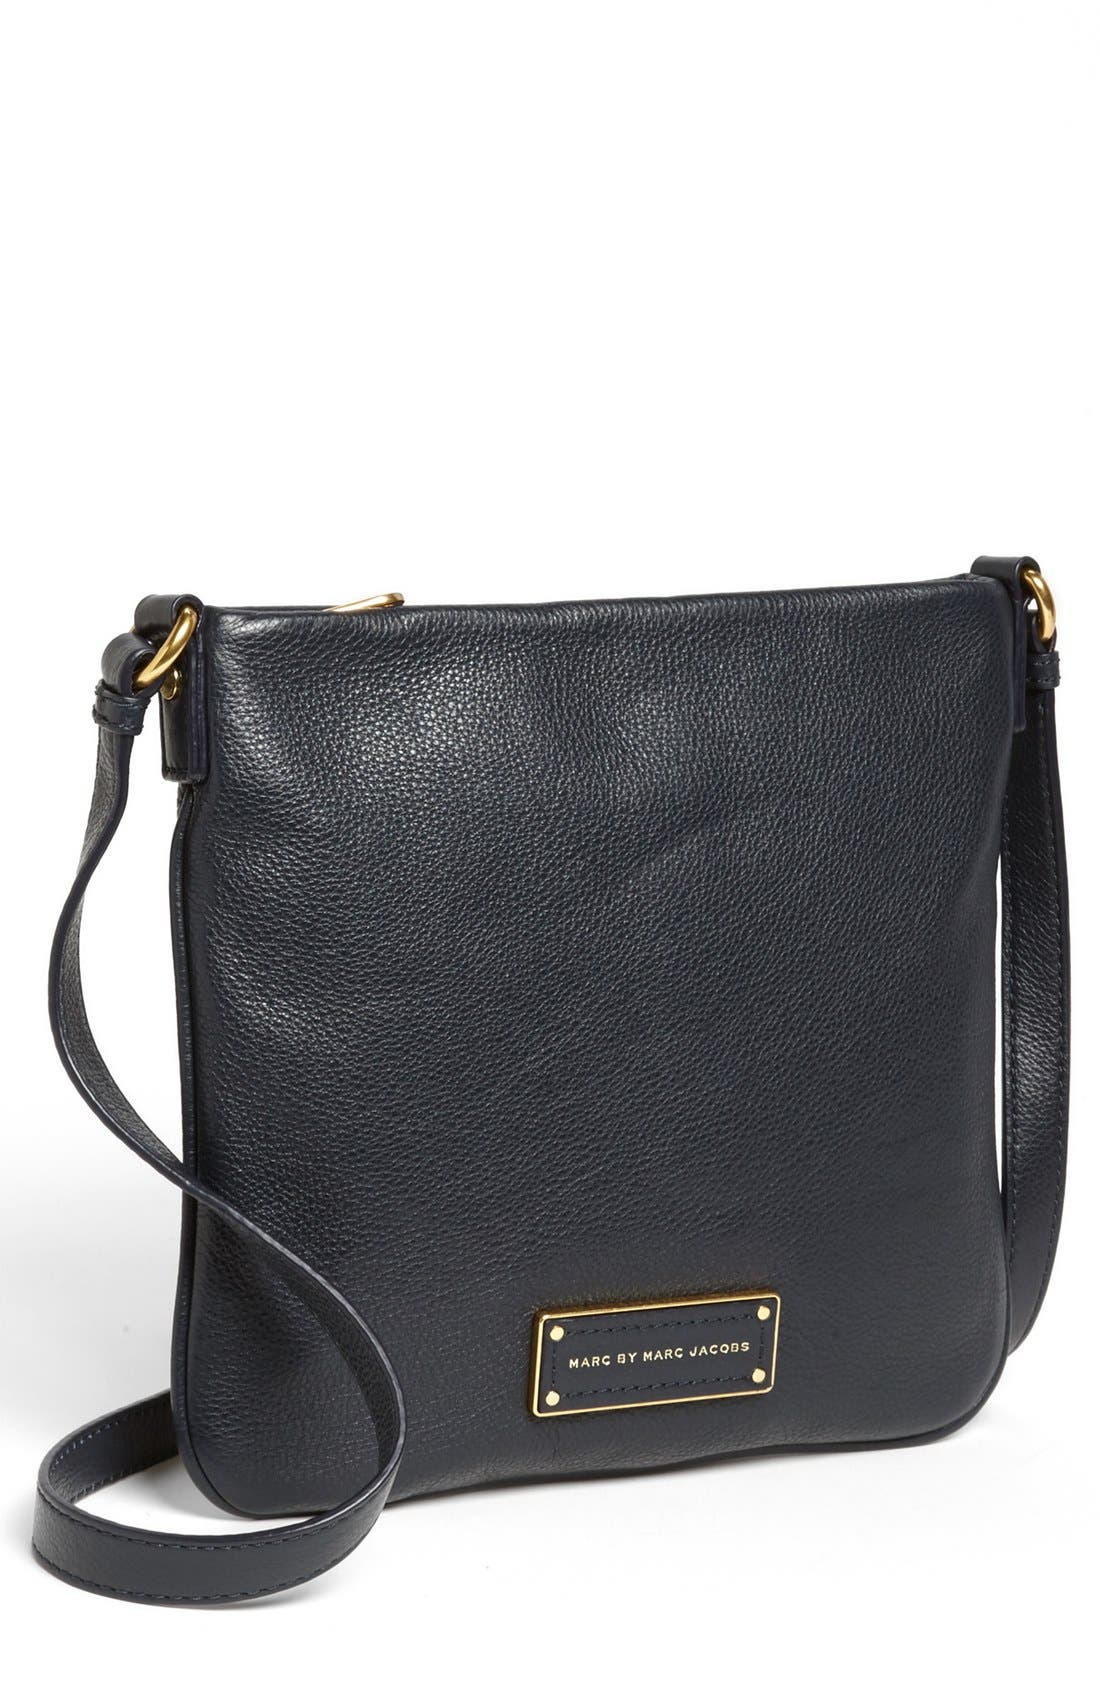 Main Image - MARC BY MARC JACOBS 'Too Hot to Handle - Sia' Crossbody Bag, Small